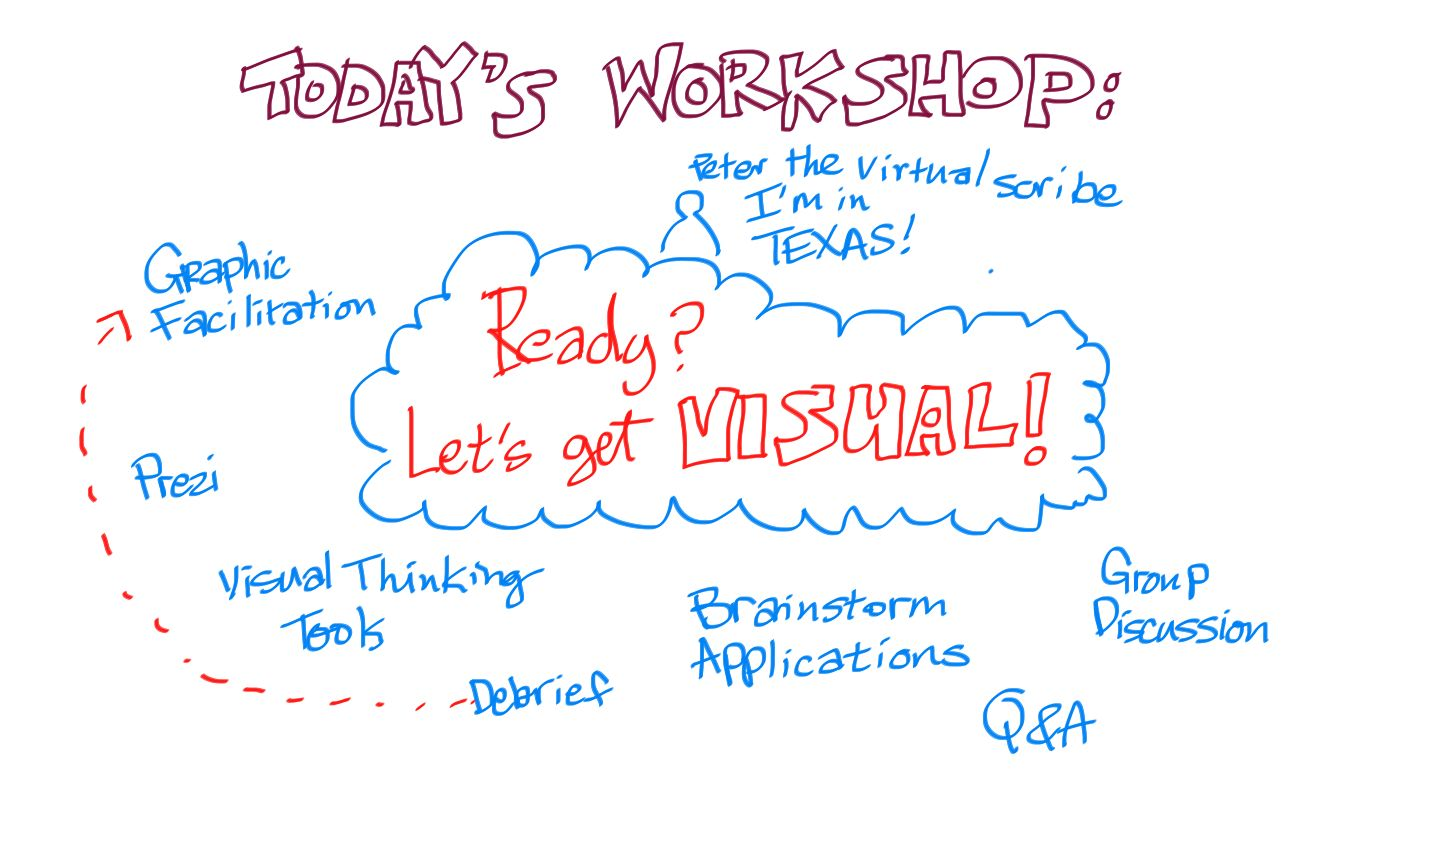 visual thinking center for teaching vanderbilt university at the end the workshop participants were asked to identify visual tools discussed in the workshop they wanted to try out in their teaching